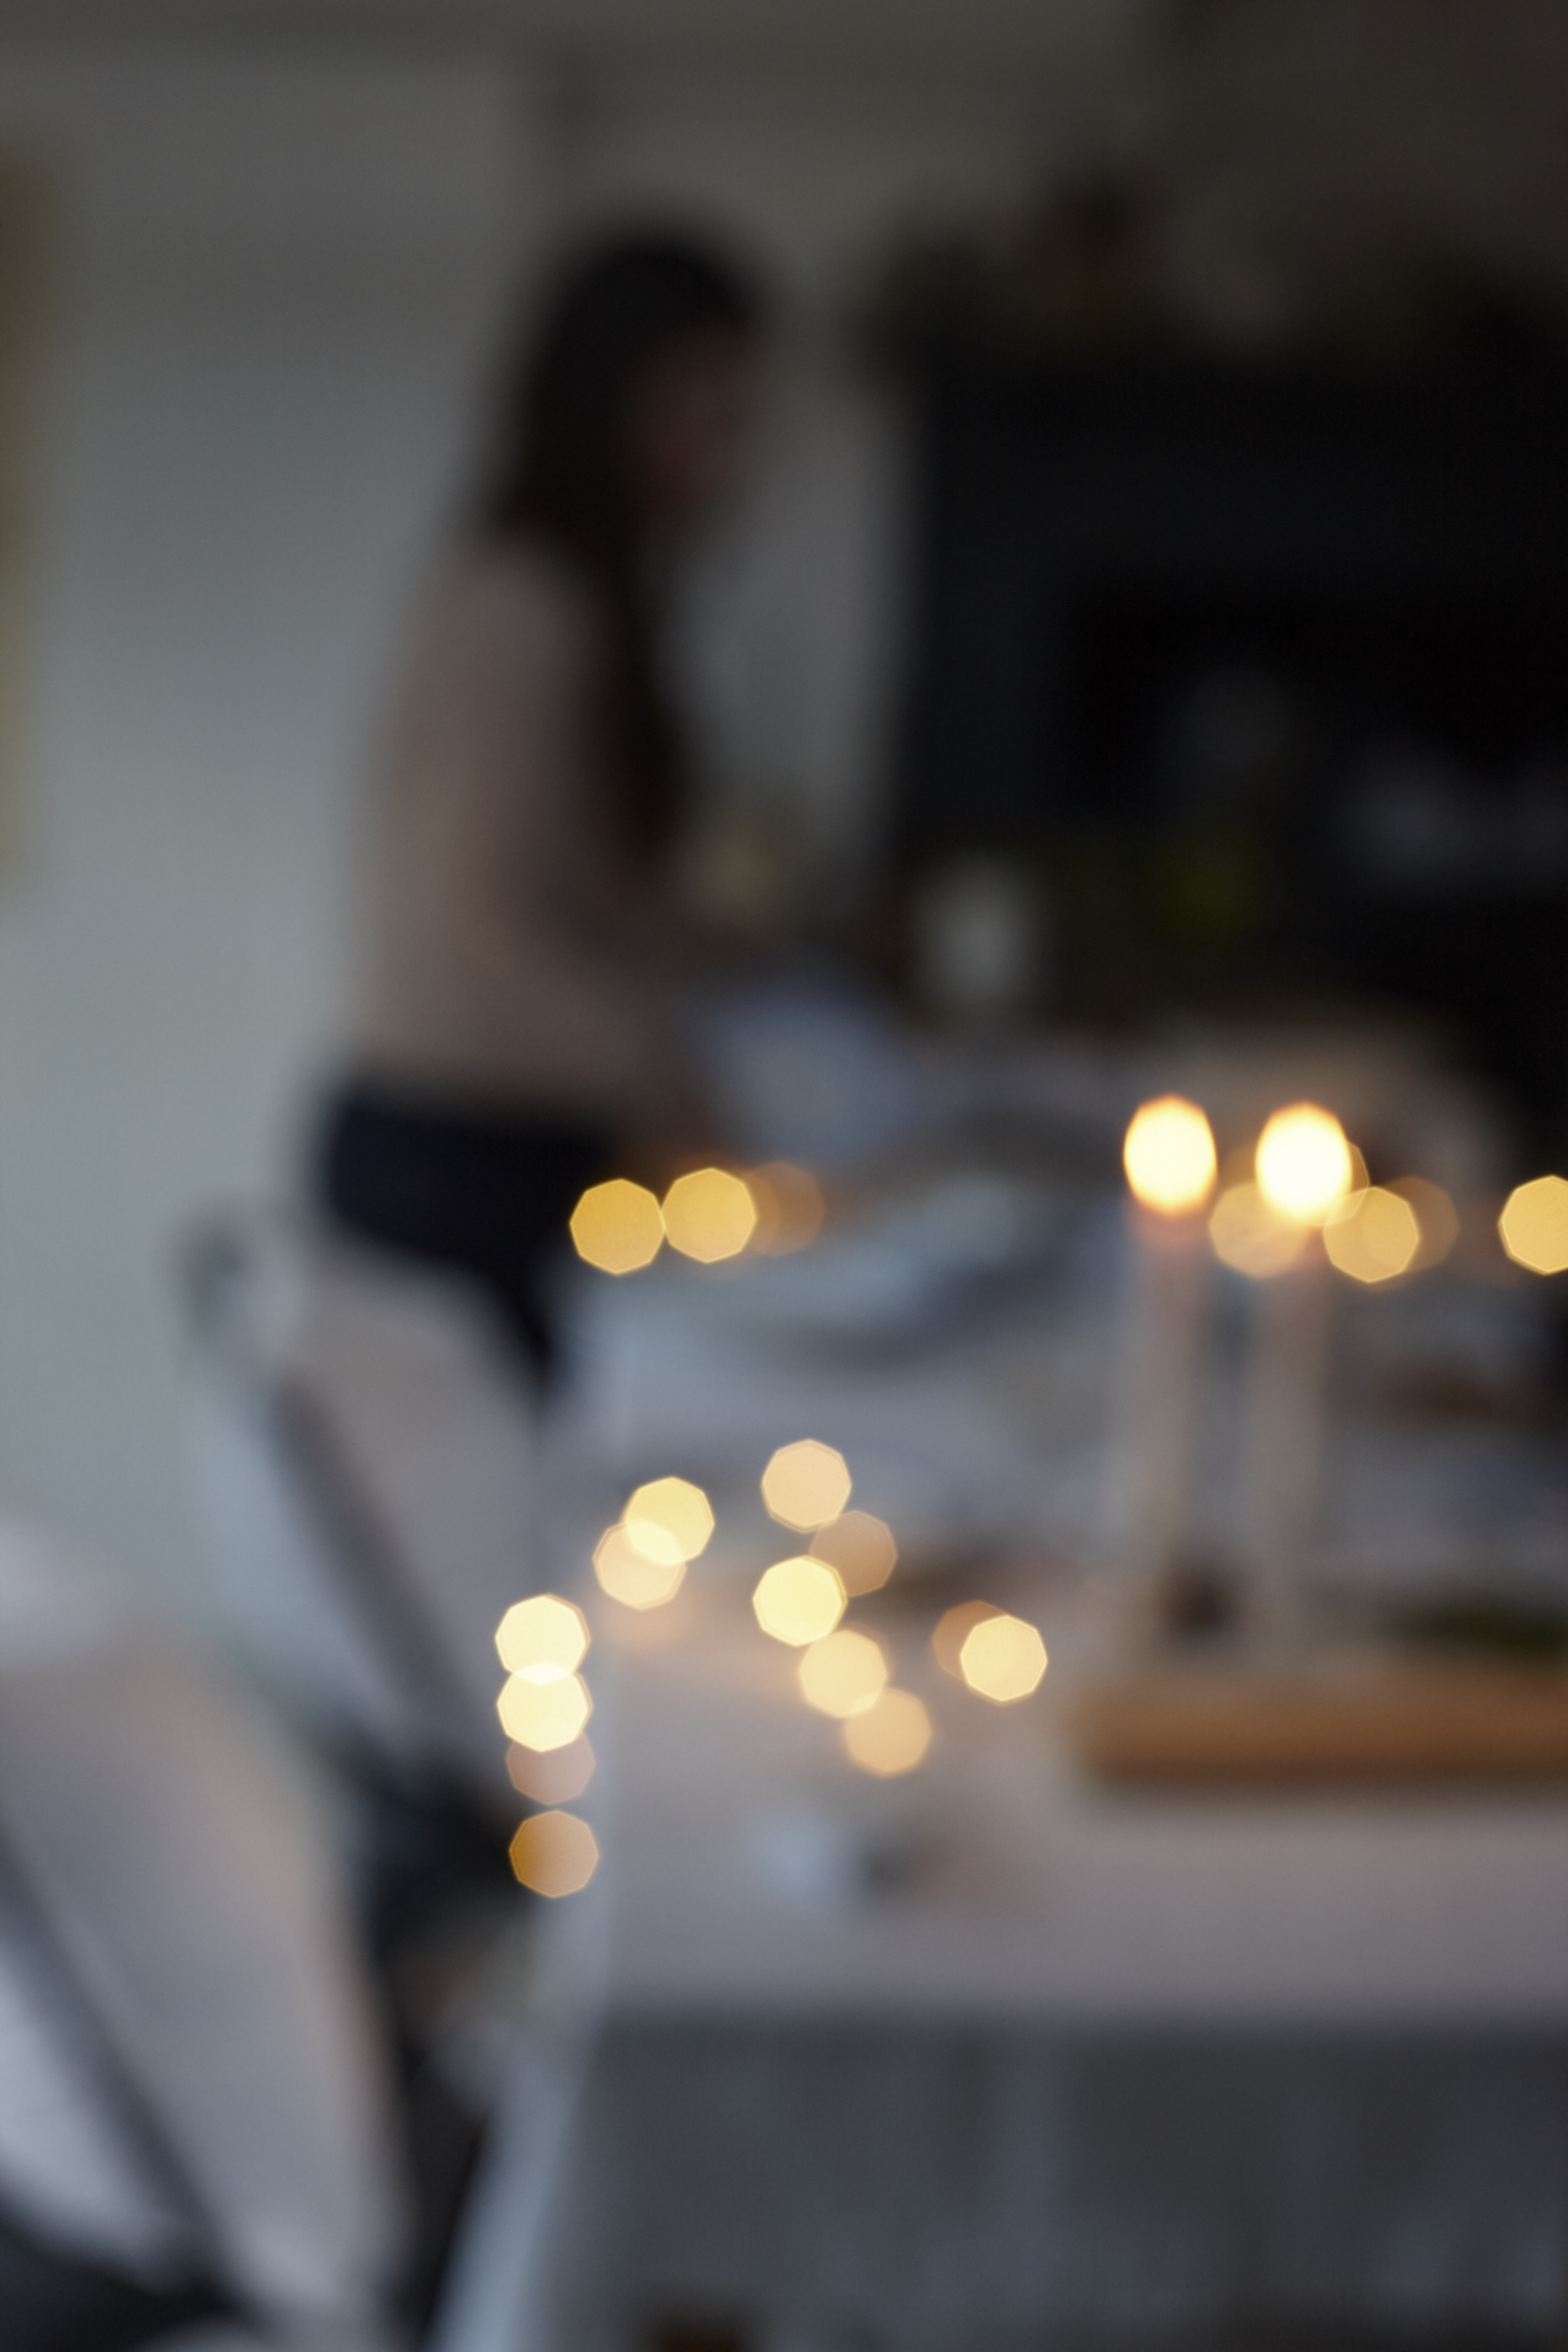 festive atmospheric dining table created by interiors photographer and still life photographer joanna henderson